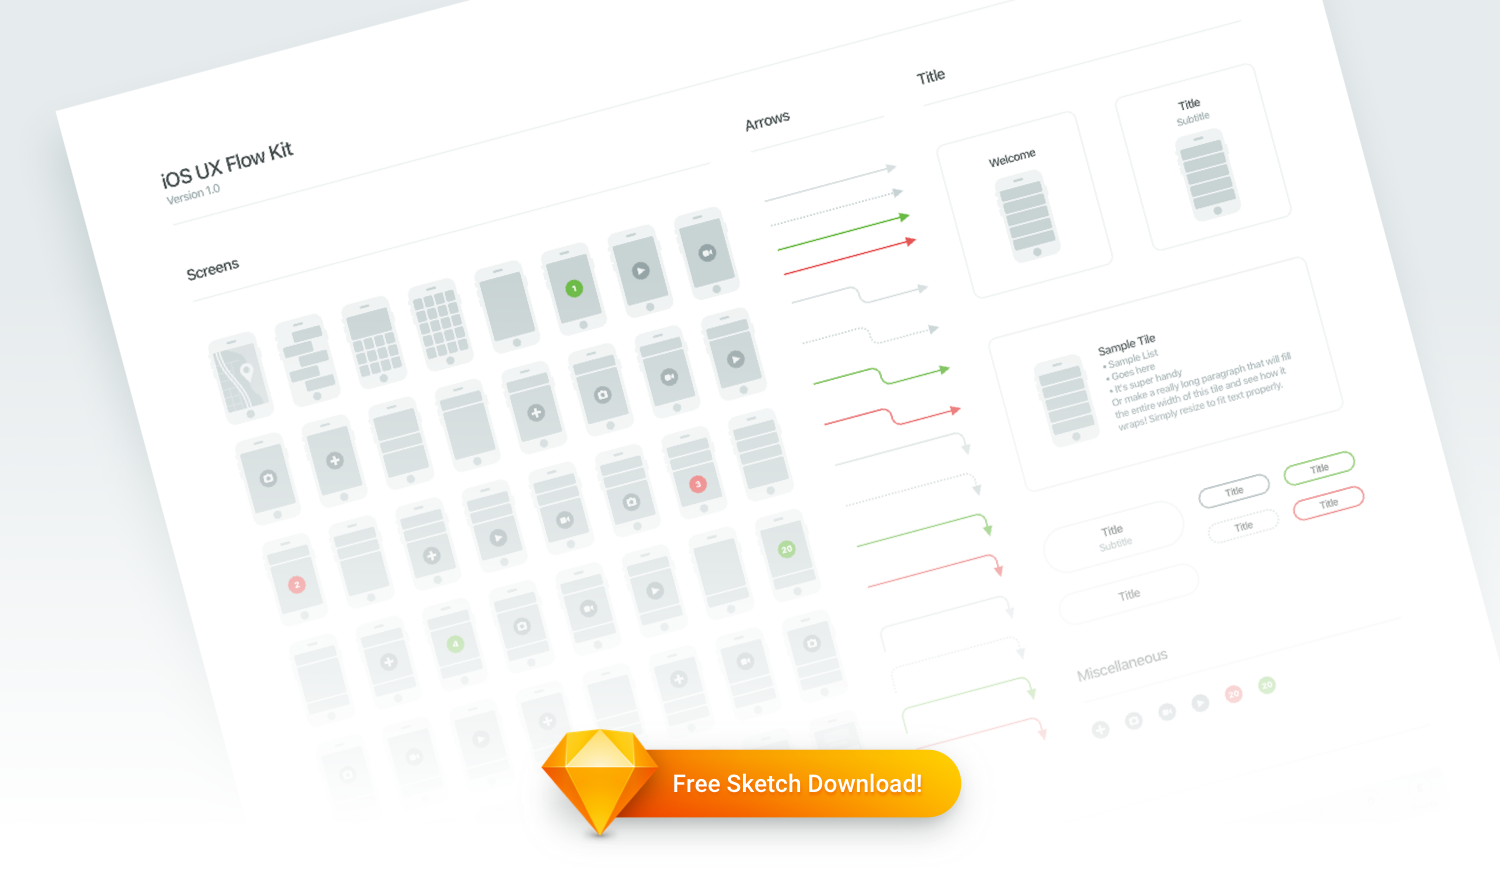 Free Sketch Download: iOS UX Flow Kit - Insightful Software